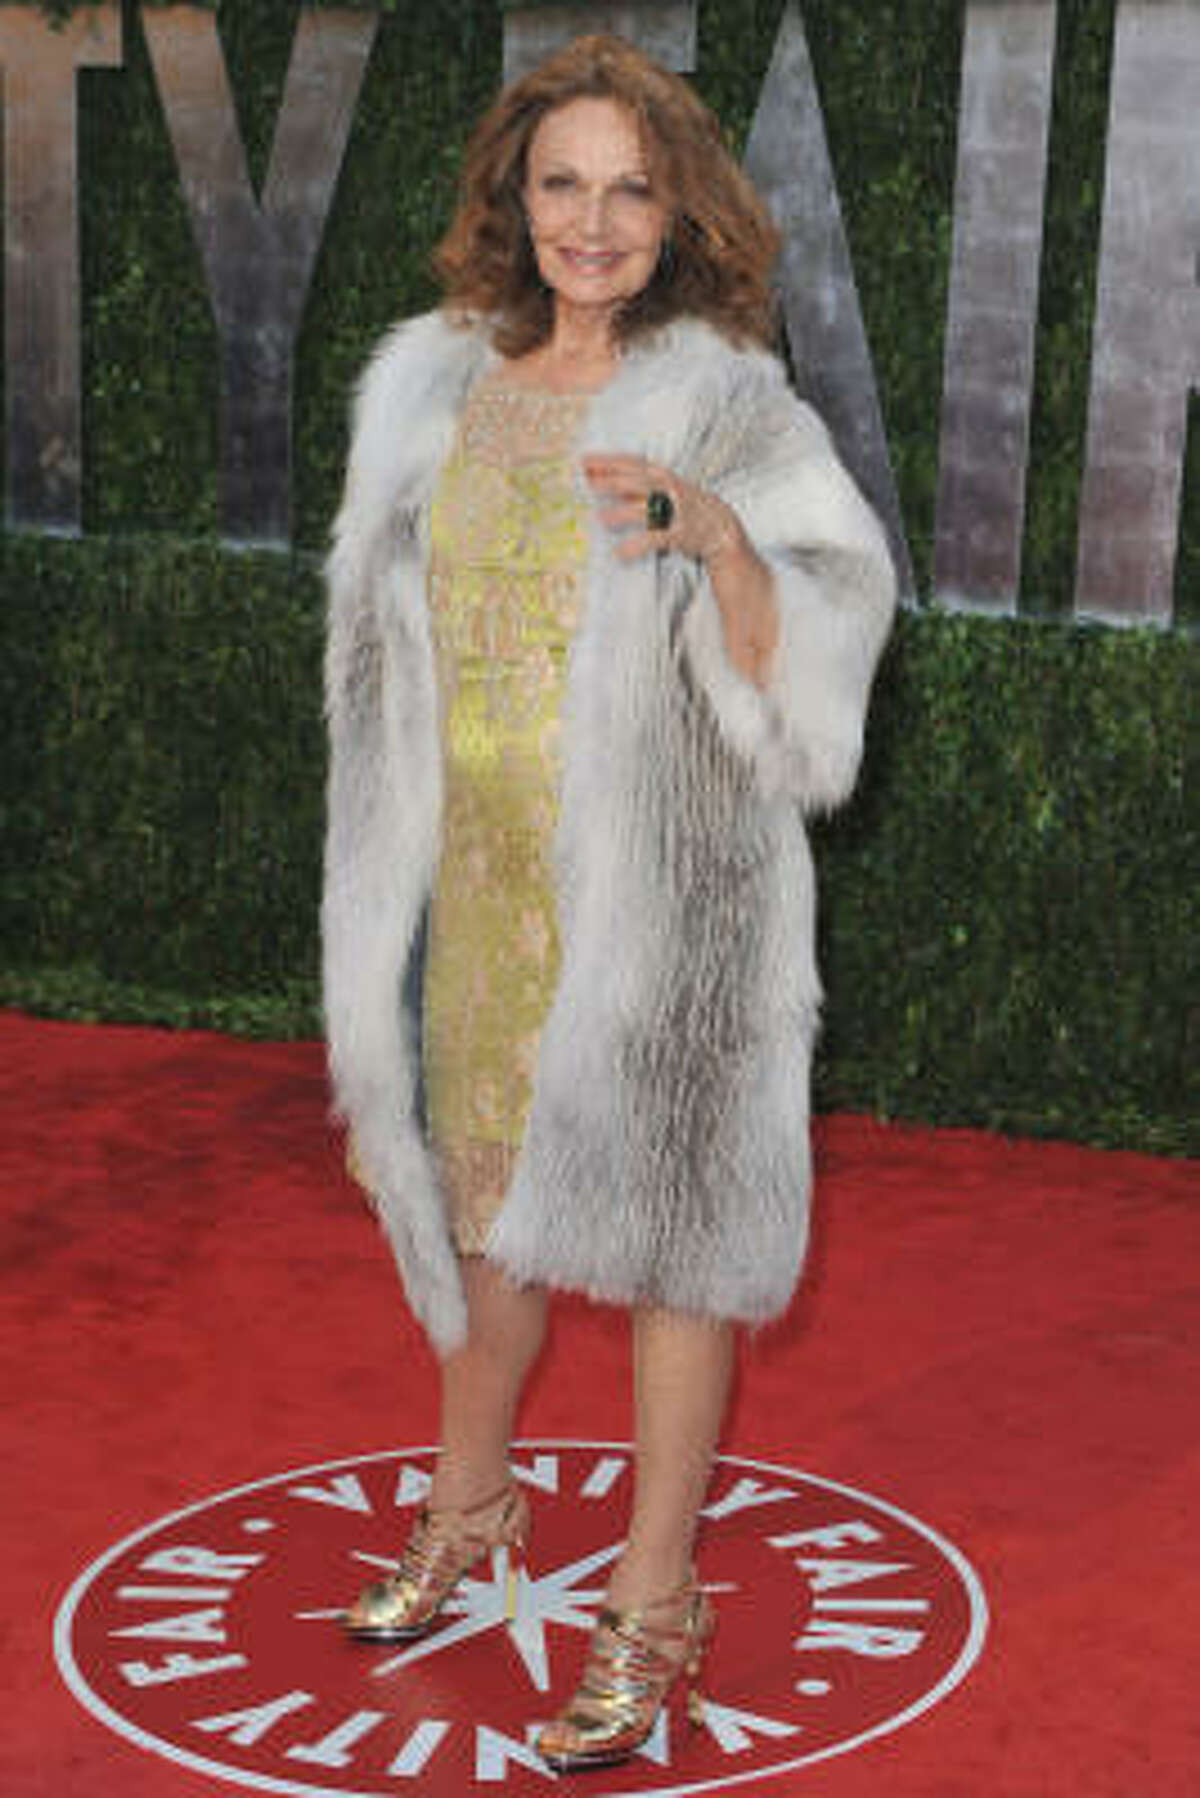 PETA'S AFTER HER NOW: Diane Von Furstenberg better watch out for red paint while she's wearing that fur coat.